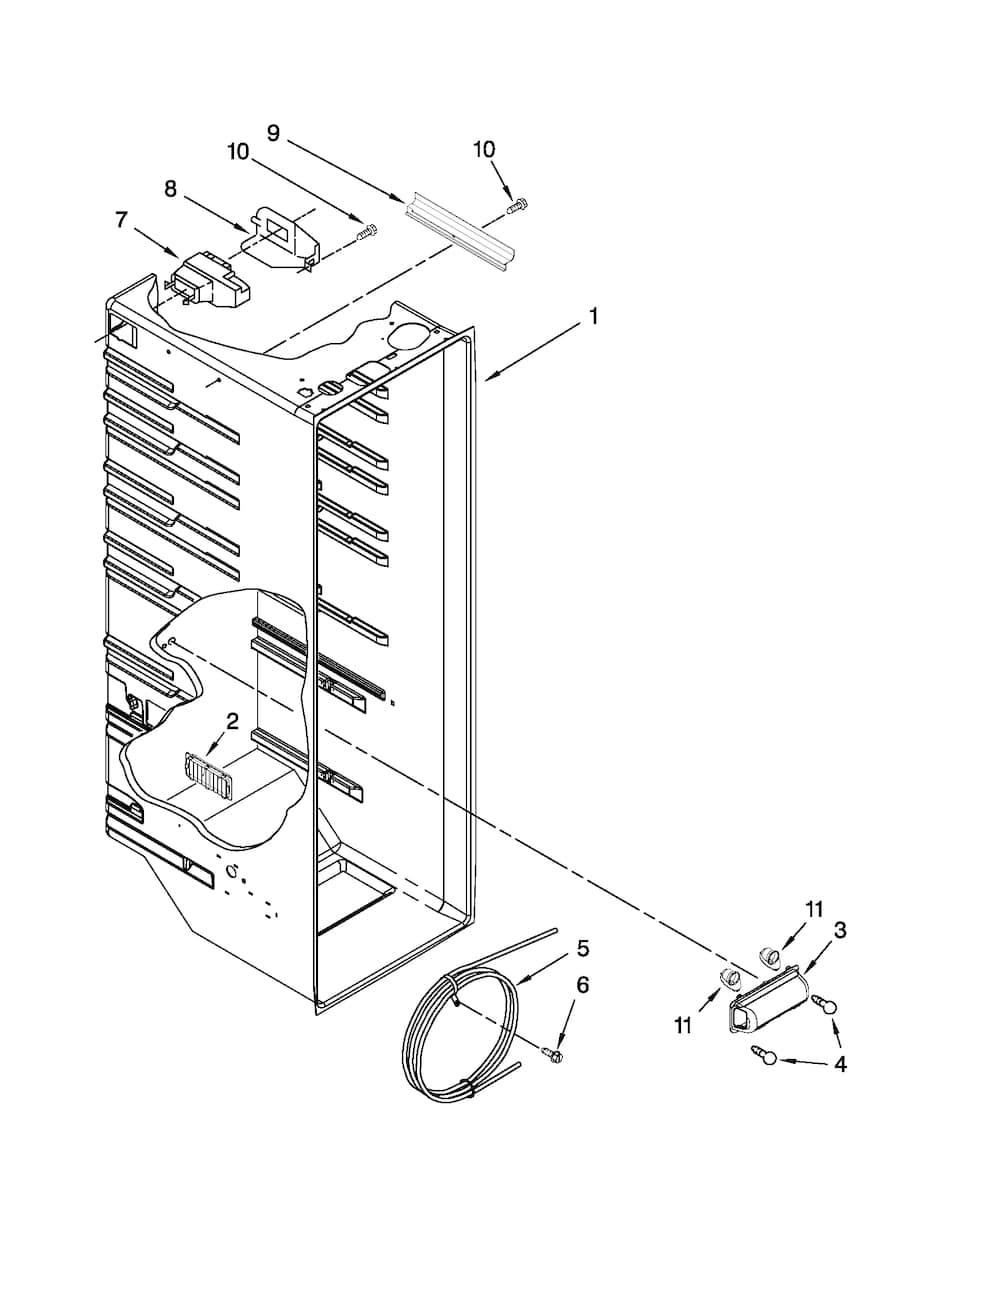 Haier Dryer Replacement Parts Wiring Diagram